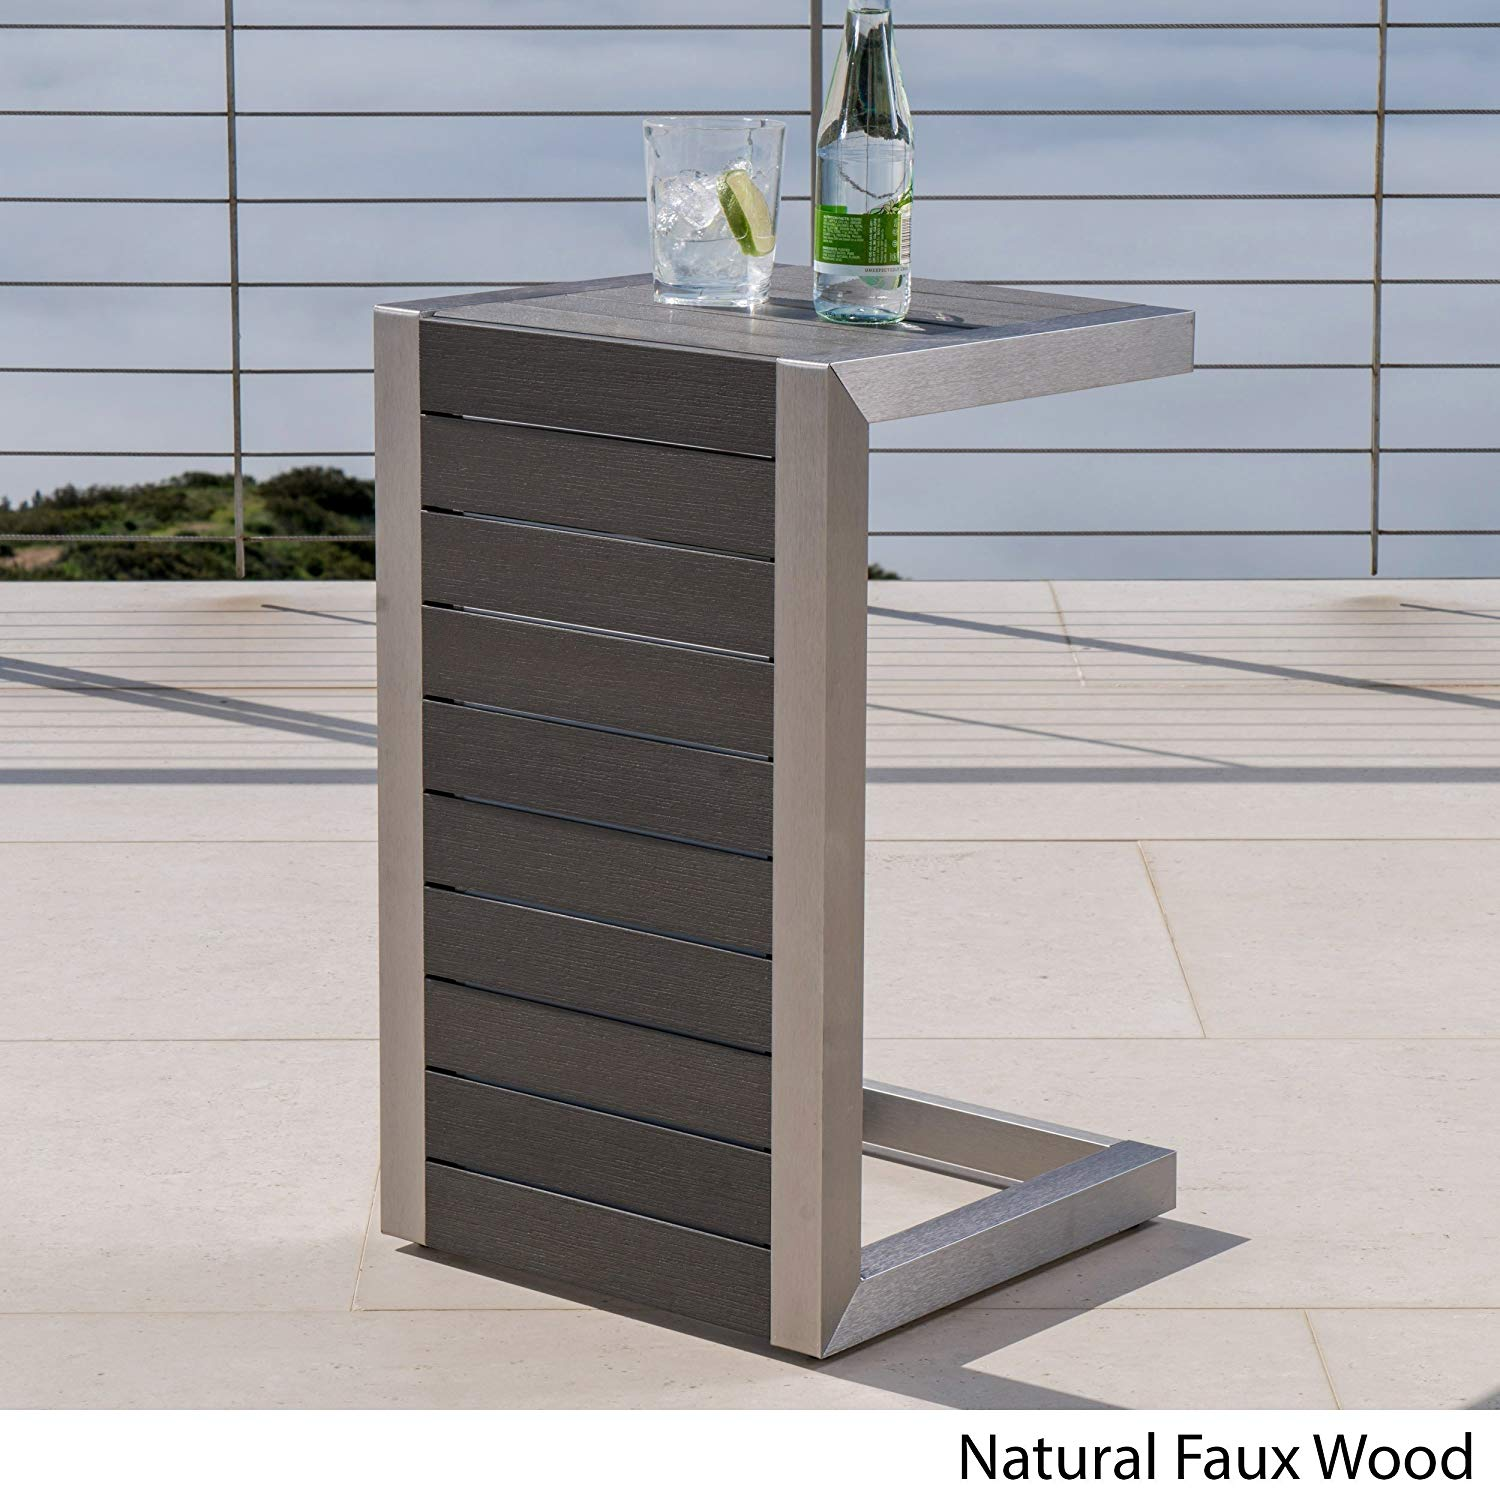 Contemporary Modern Cape Coral C-Shaped End Table Aluminum Wood Wicker (Natural Faux Wood C - Shaped Table)